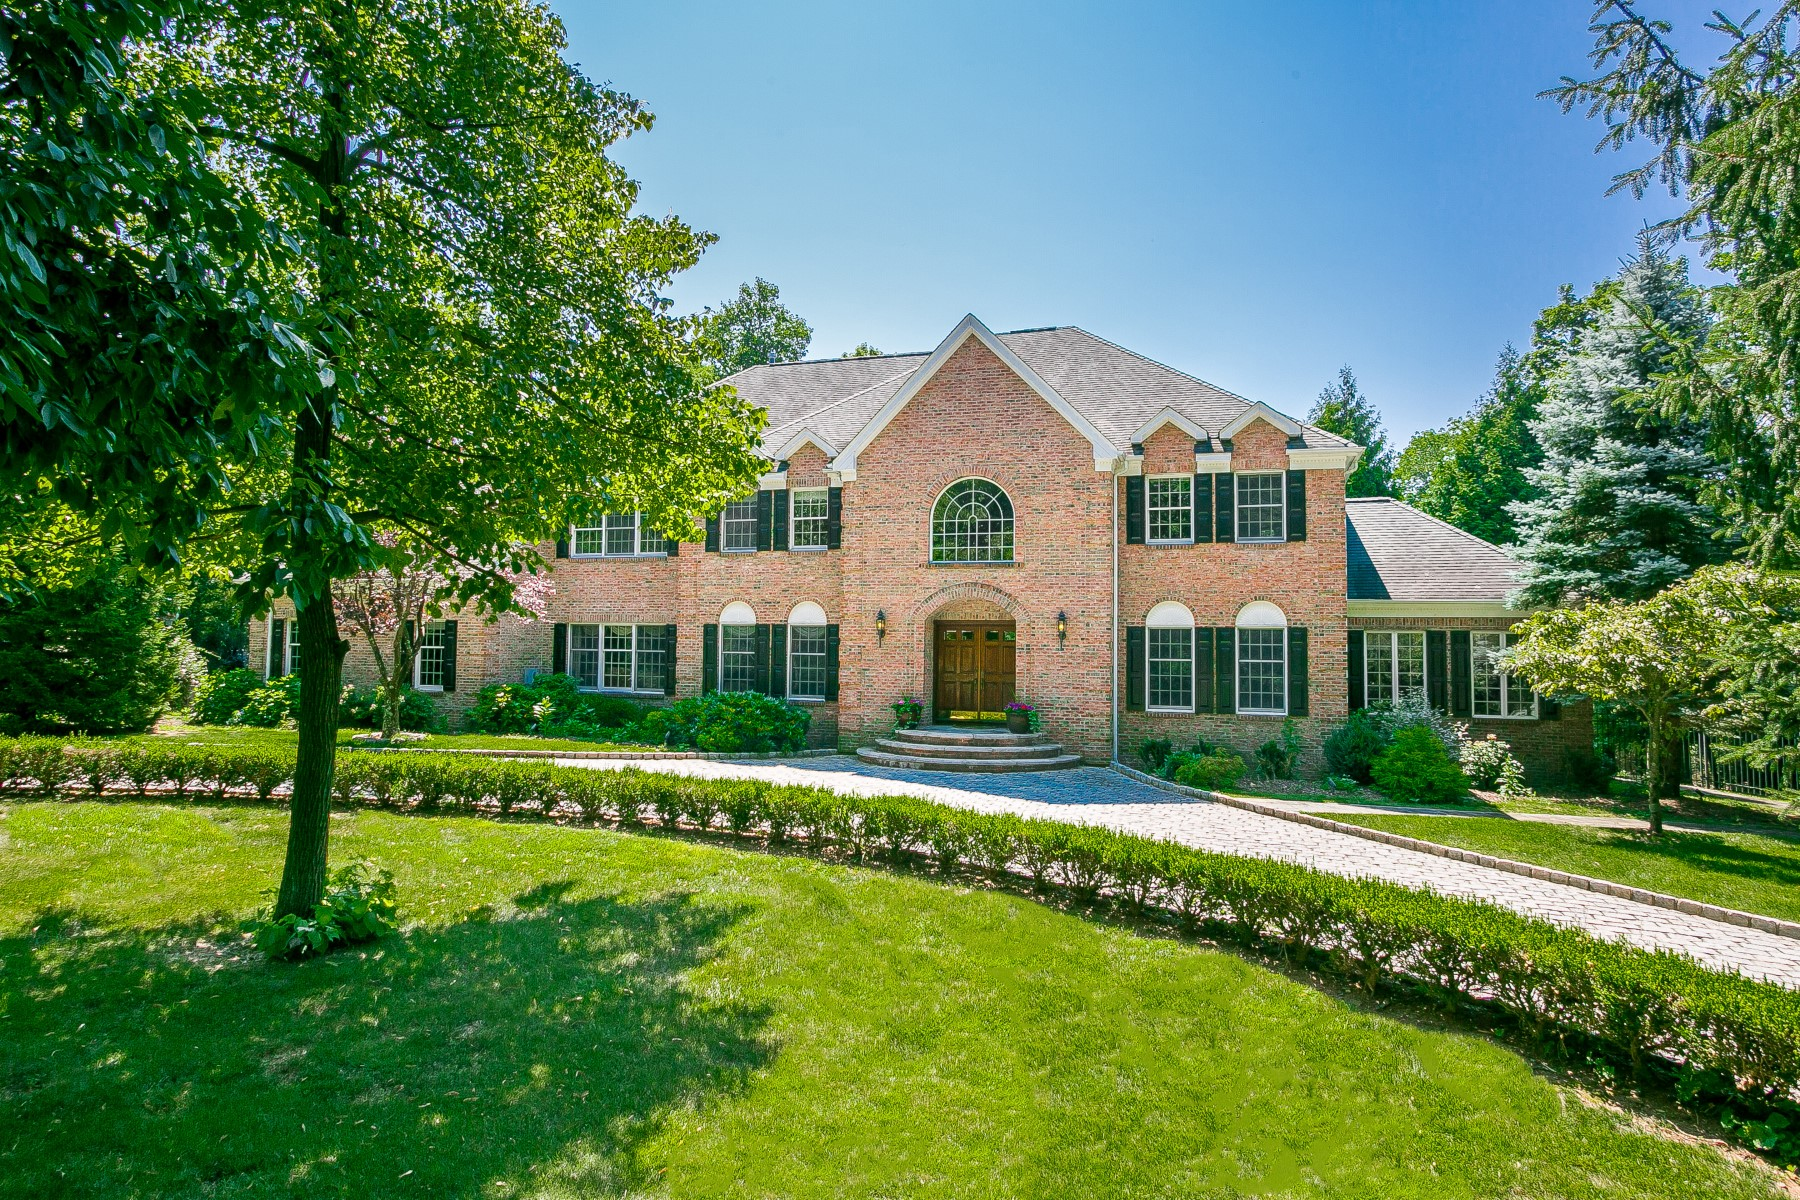 House for Sale at Desirable Cul-de-sac Location 14 Charlotte Hill Drive Bernardsville, New Jersey 07924 United States